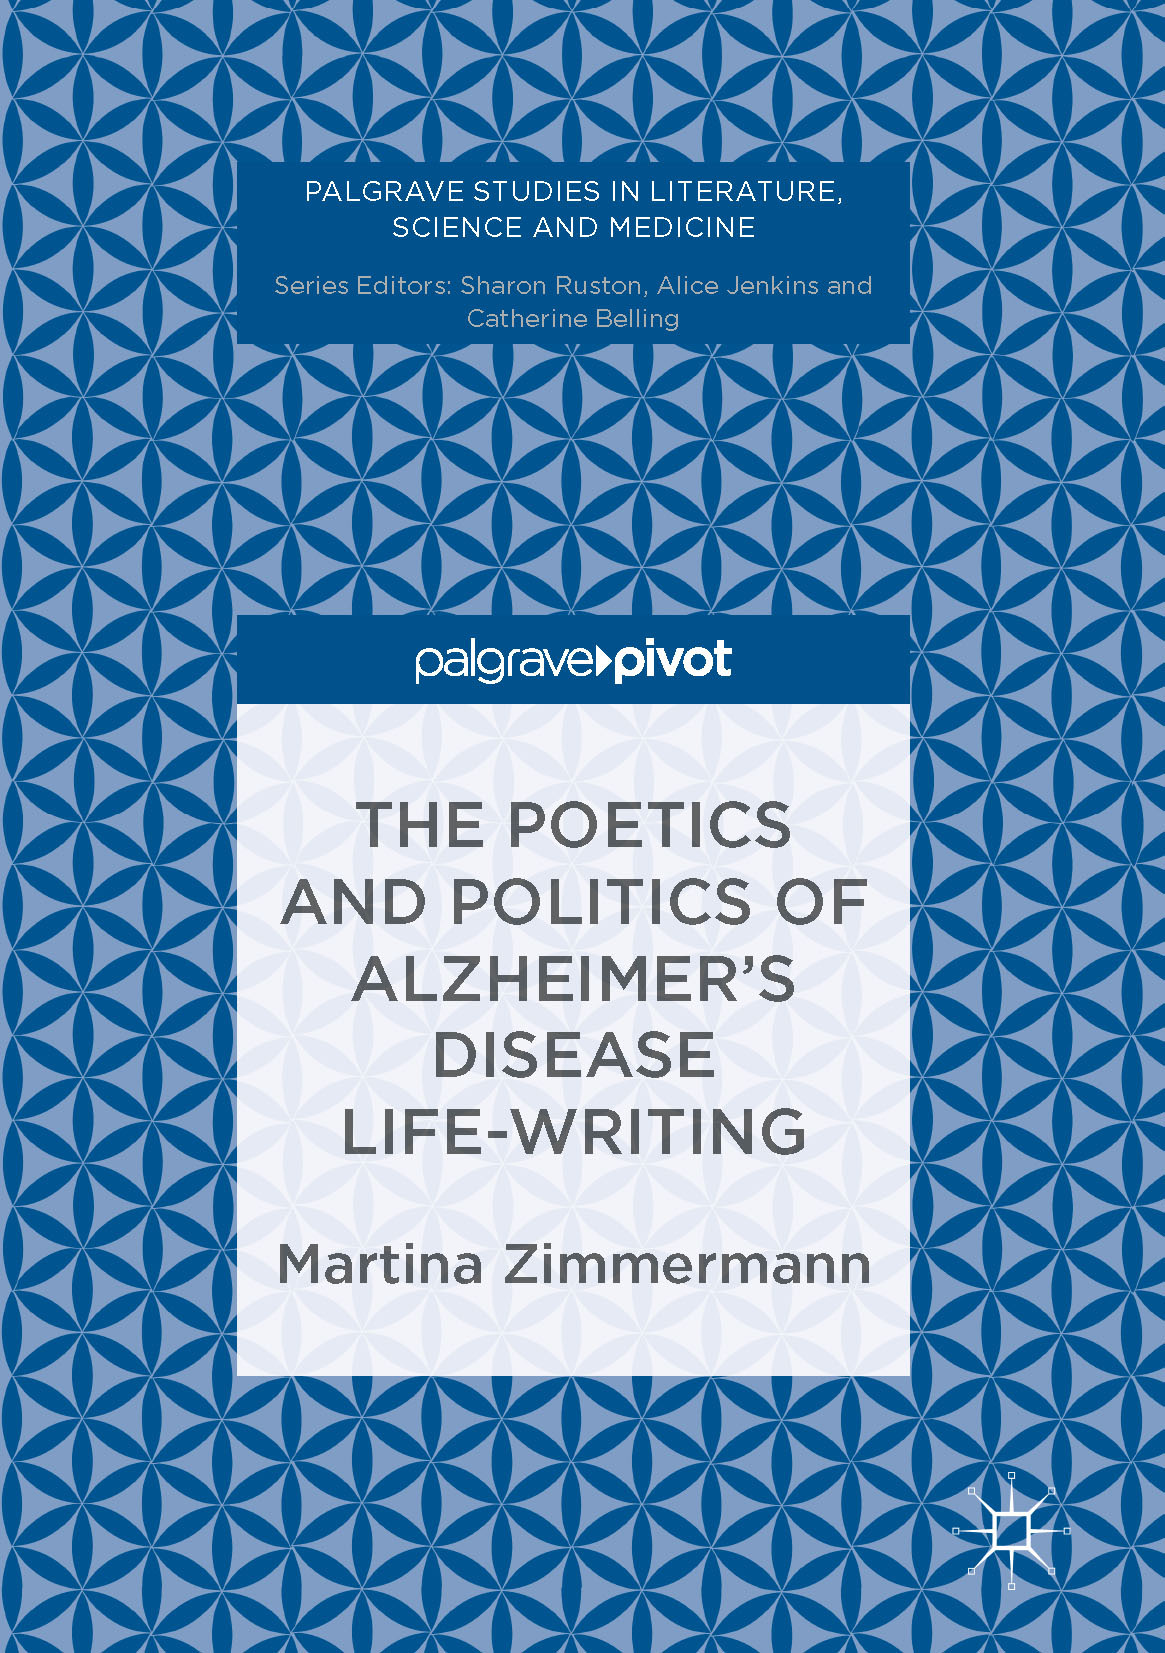 Zimmermann, Martina - The Poetics and Politics of Alzheimer's Disease Life-Writing, ebook